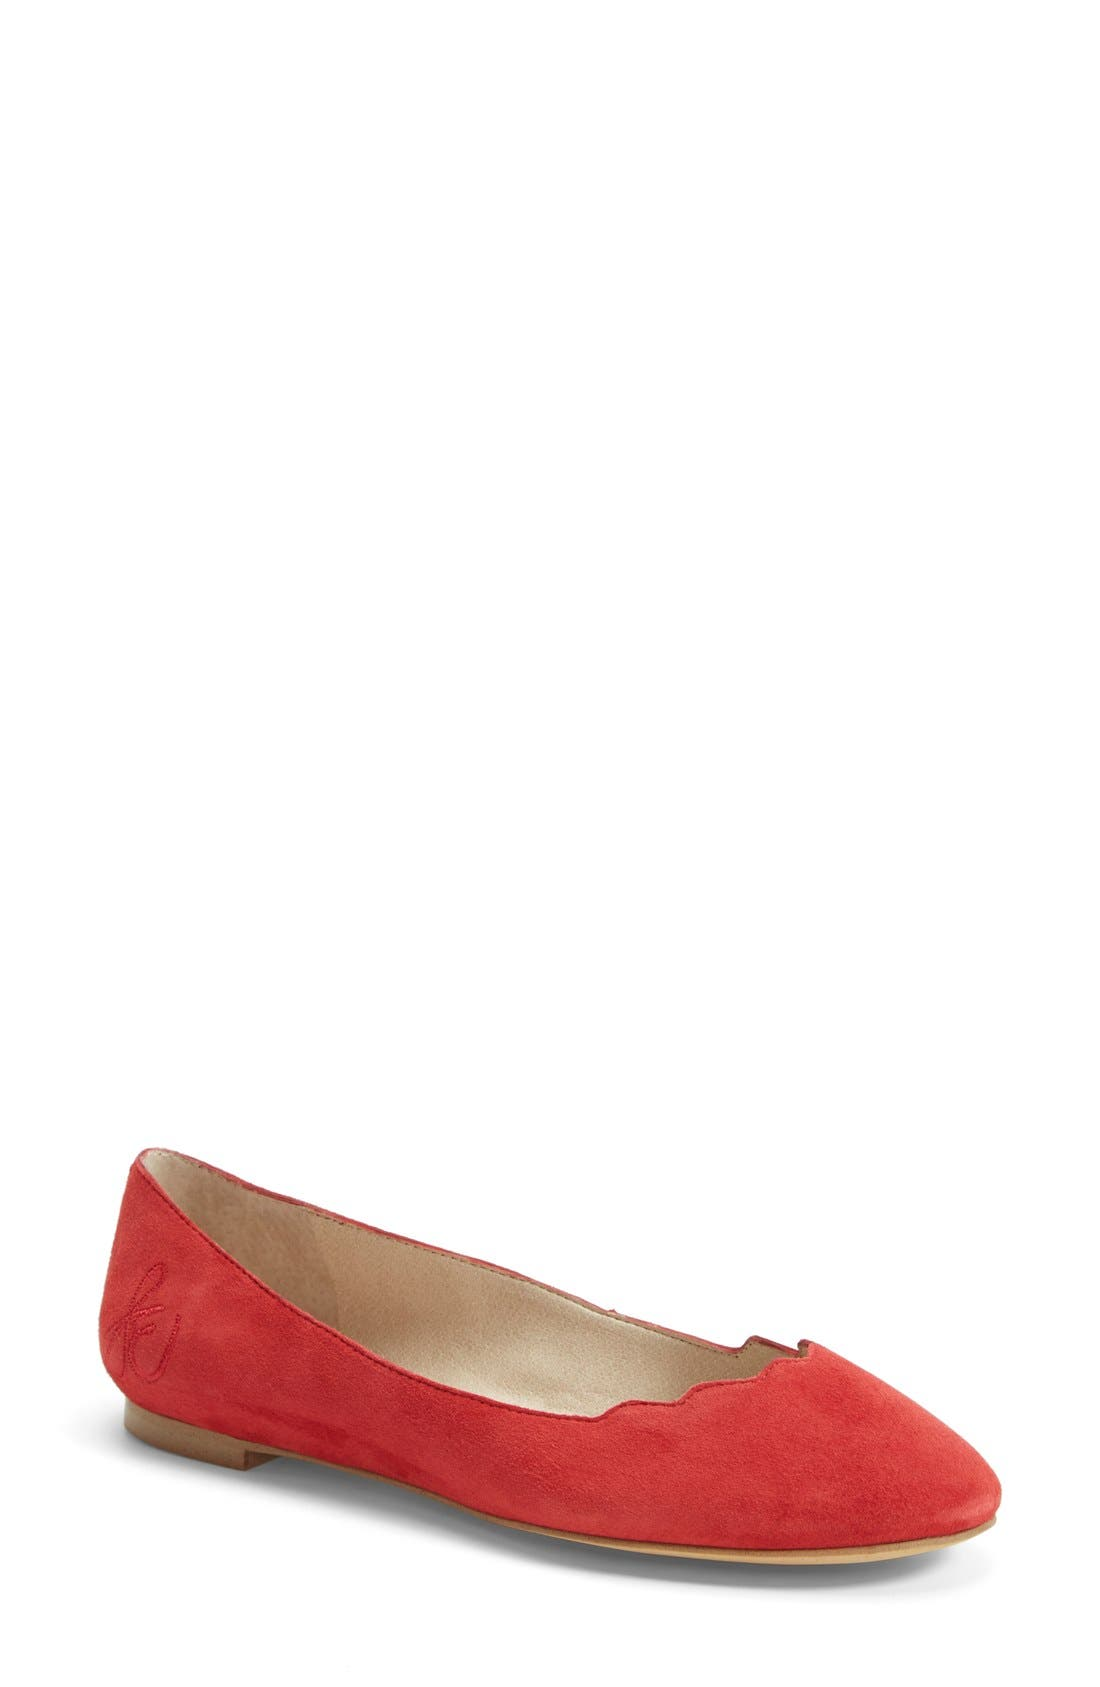 Main Image - Sam Edelman 'Alaine' Scalloped Topline Flat (Women)